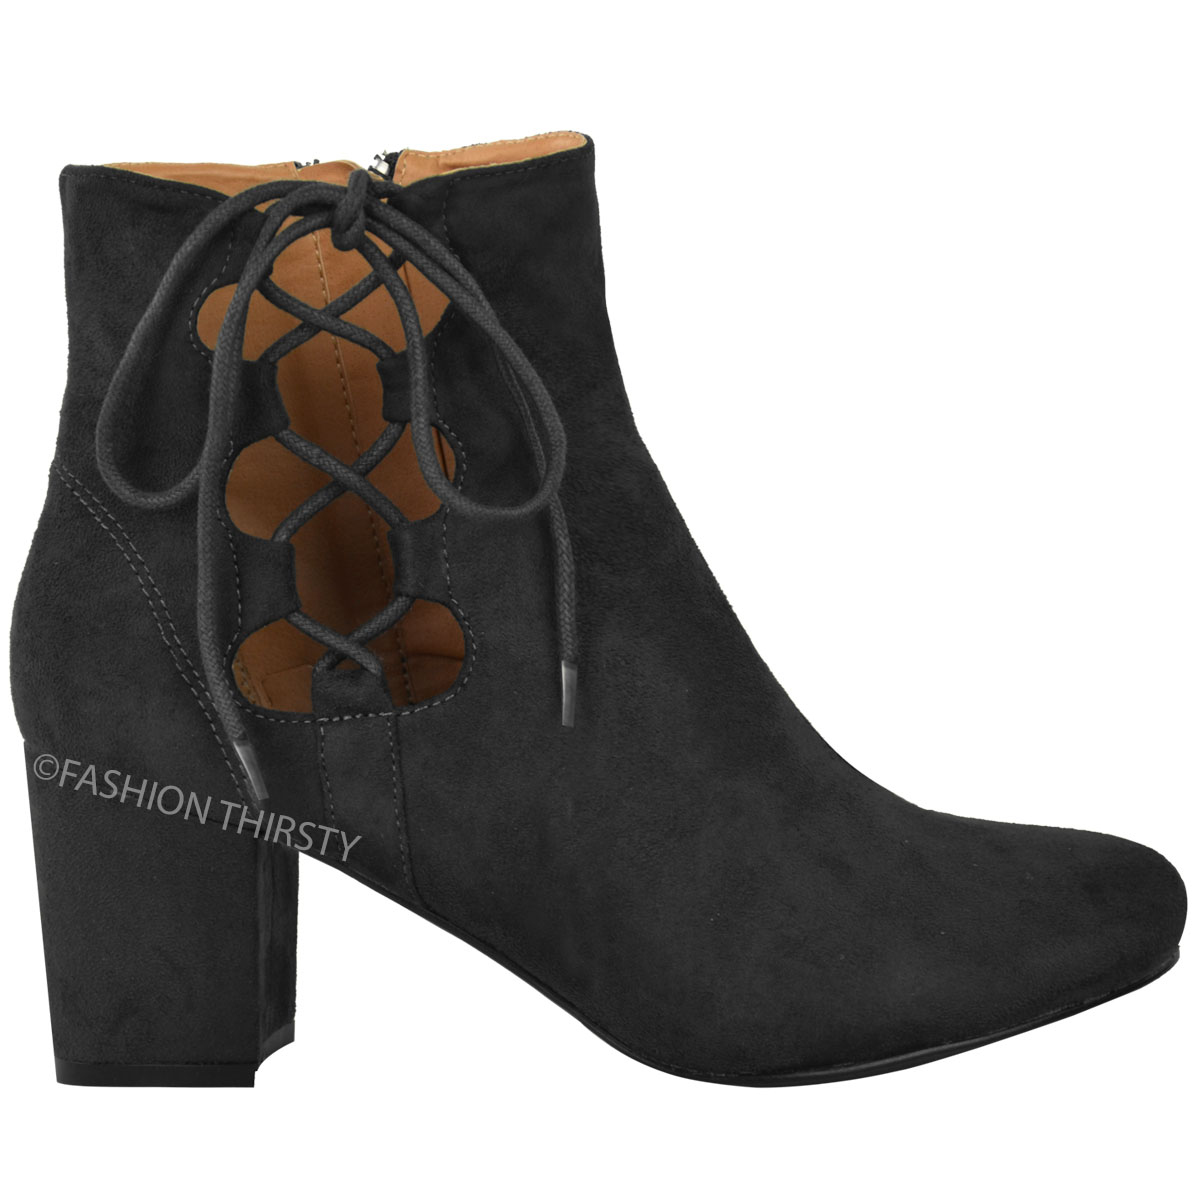 thumbnail 4 - WOMENS-LADIES-LOW-BLOCK-HEEL-CHELSEA-ANKLE-BOOTS-CUT-OUT-LACE-UP-SHOES-NEW-SIZE